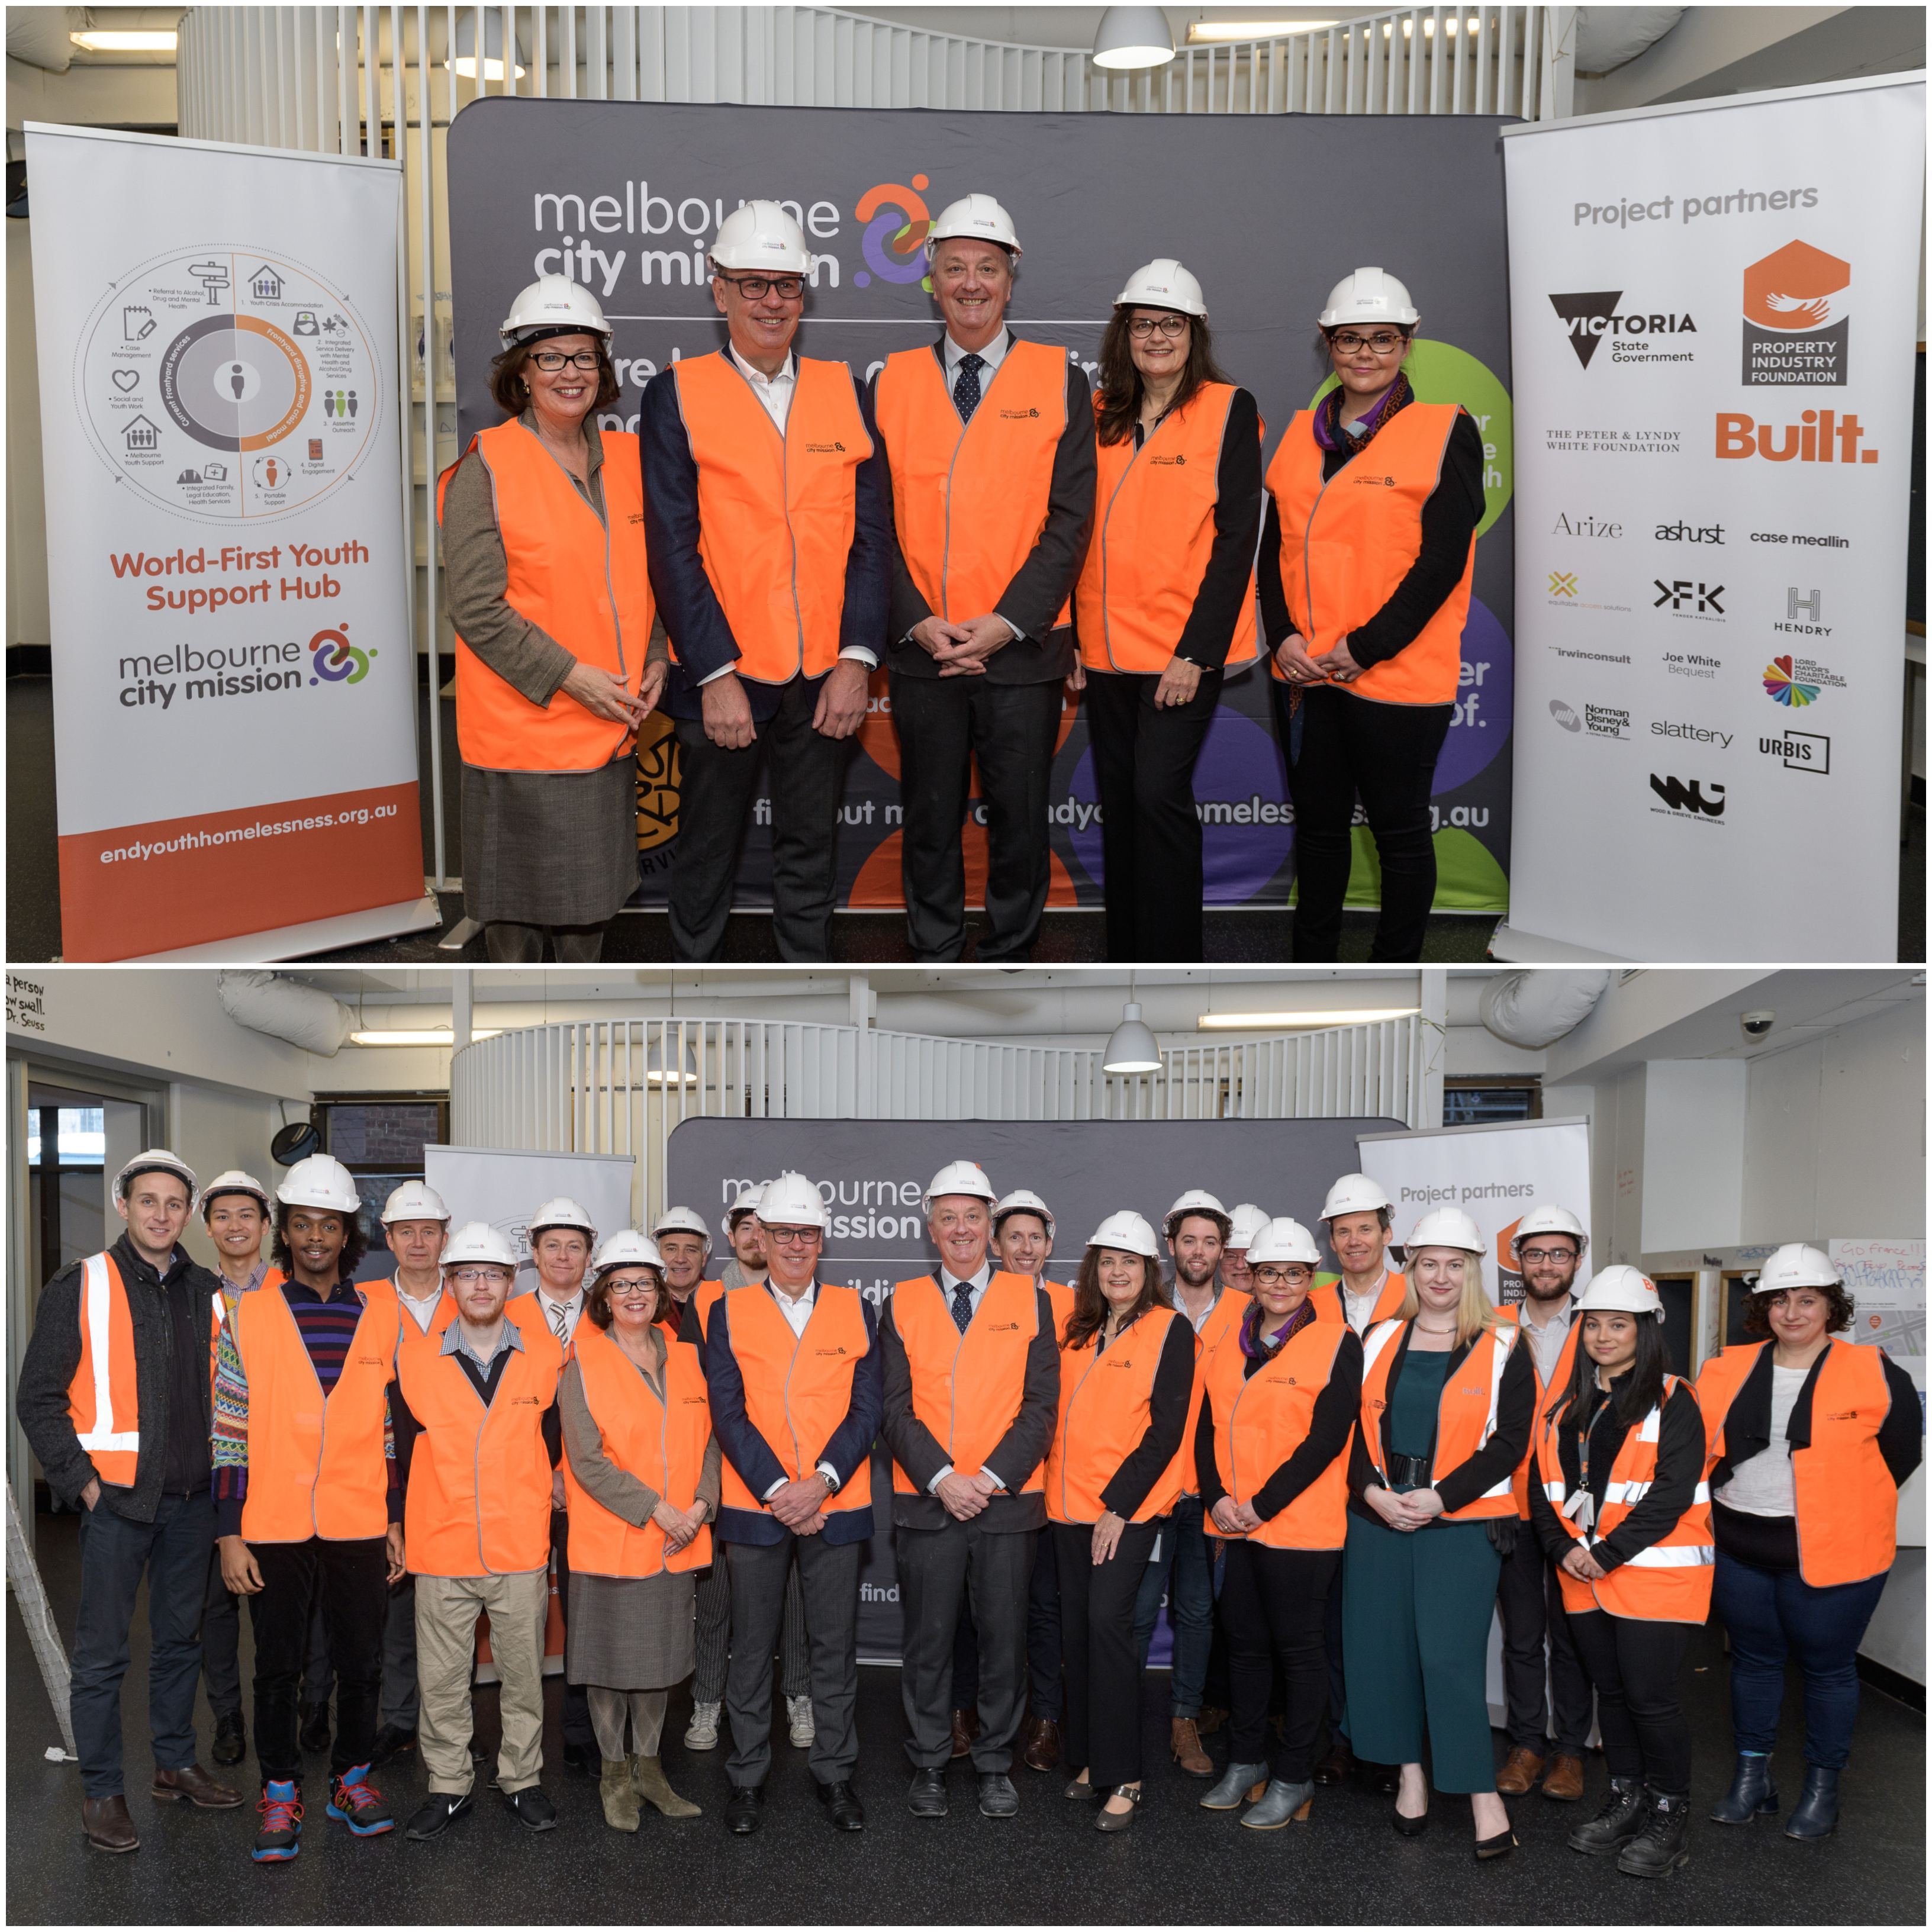 Victorian Minister for Housing Martin Foley was onsite at 19 King Street to mark the start of the $8 million construction project